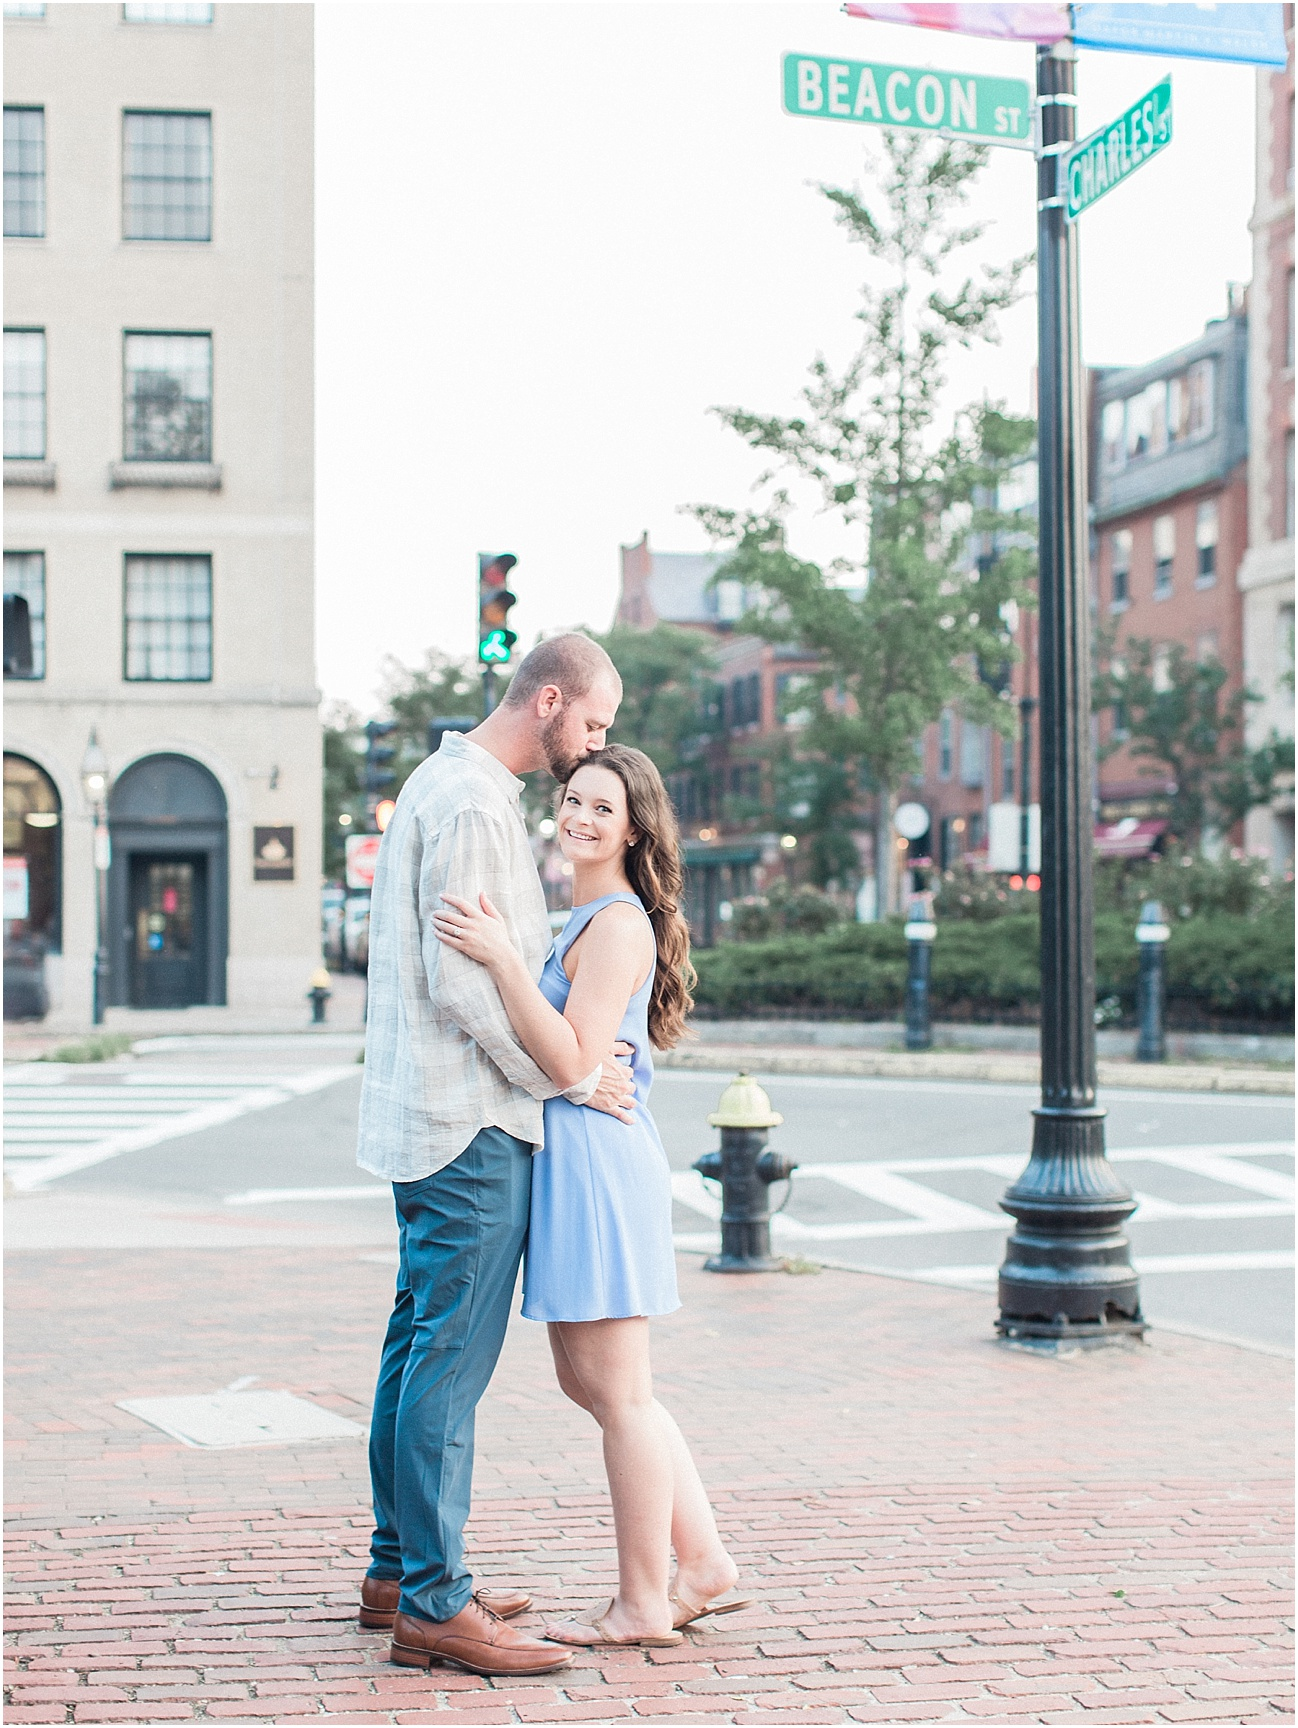 christina_frank_common_engagement_acorn_street_back_bay_cape_cod_boston_wedding_photographer_meredith_jane_photography_photo_0702.jpg